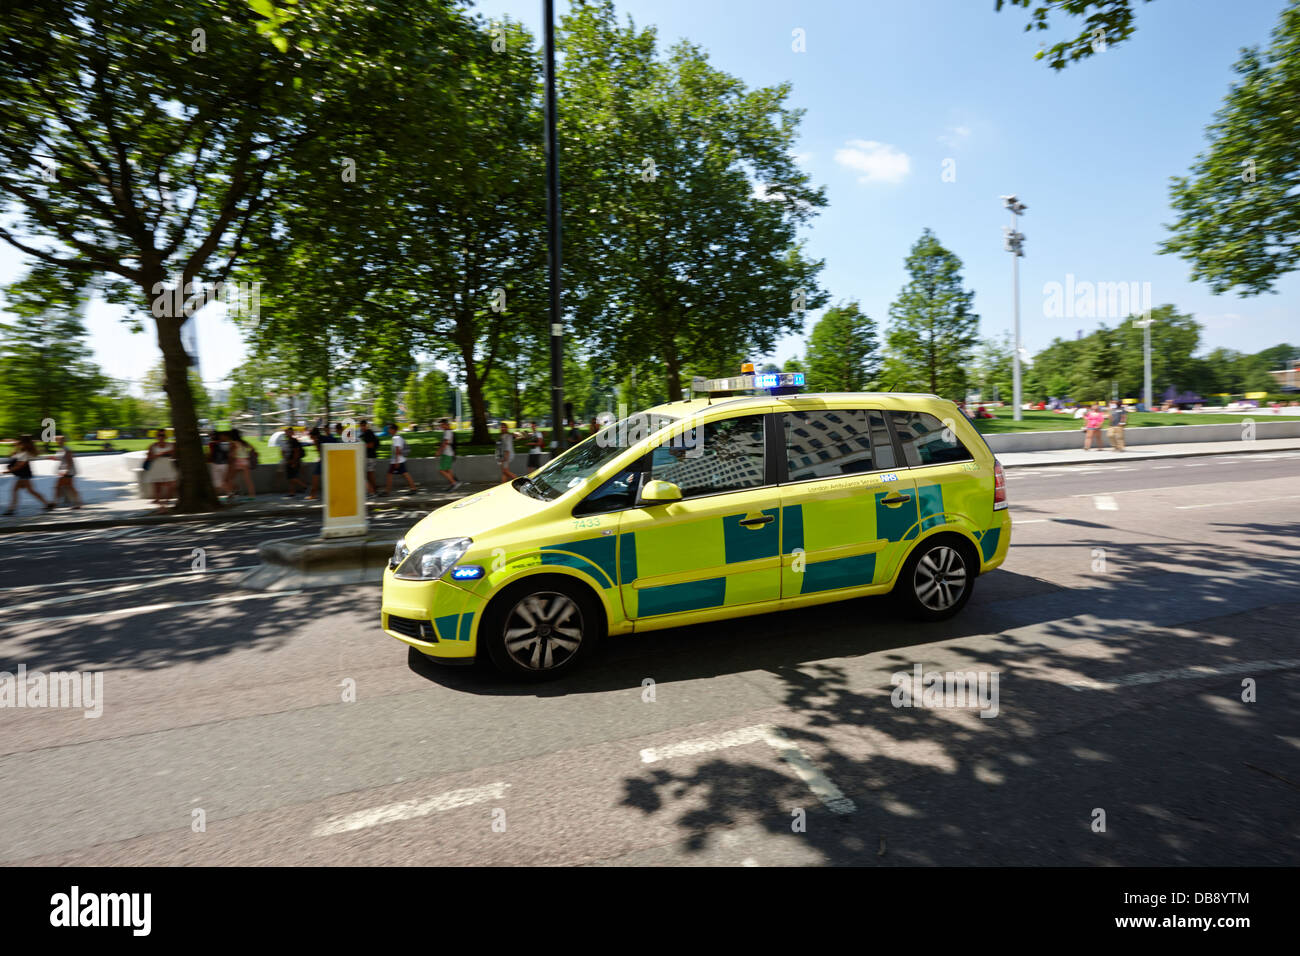 London ambulance service fast response paramedic vehicle speeding along southbank london England UK - Stock Image